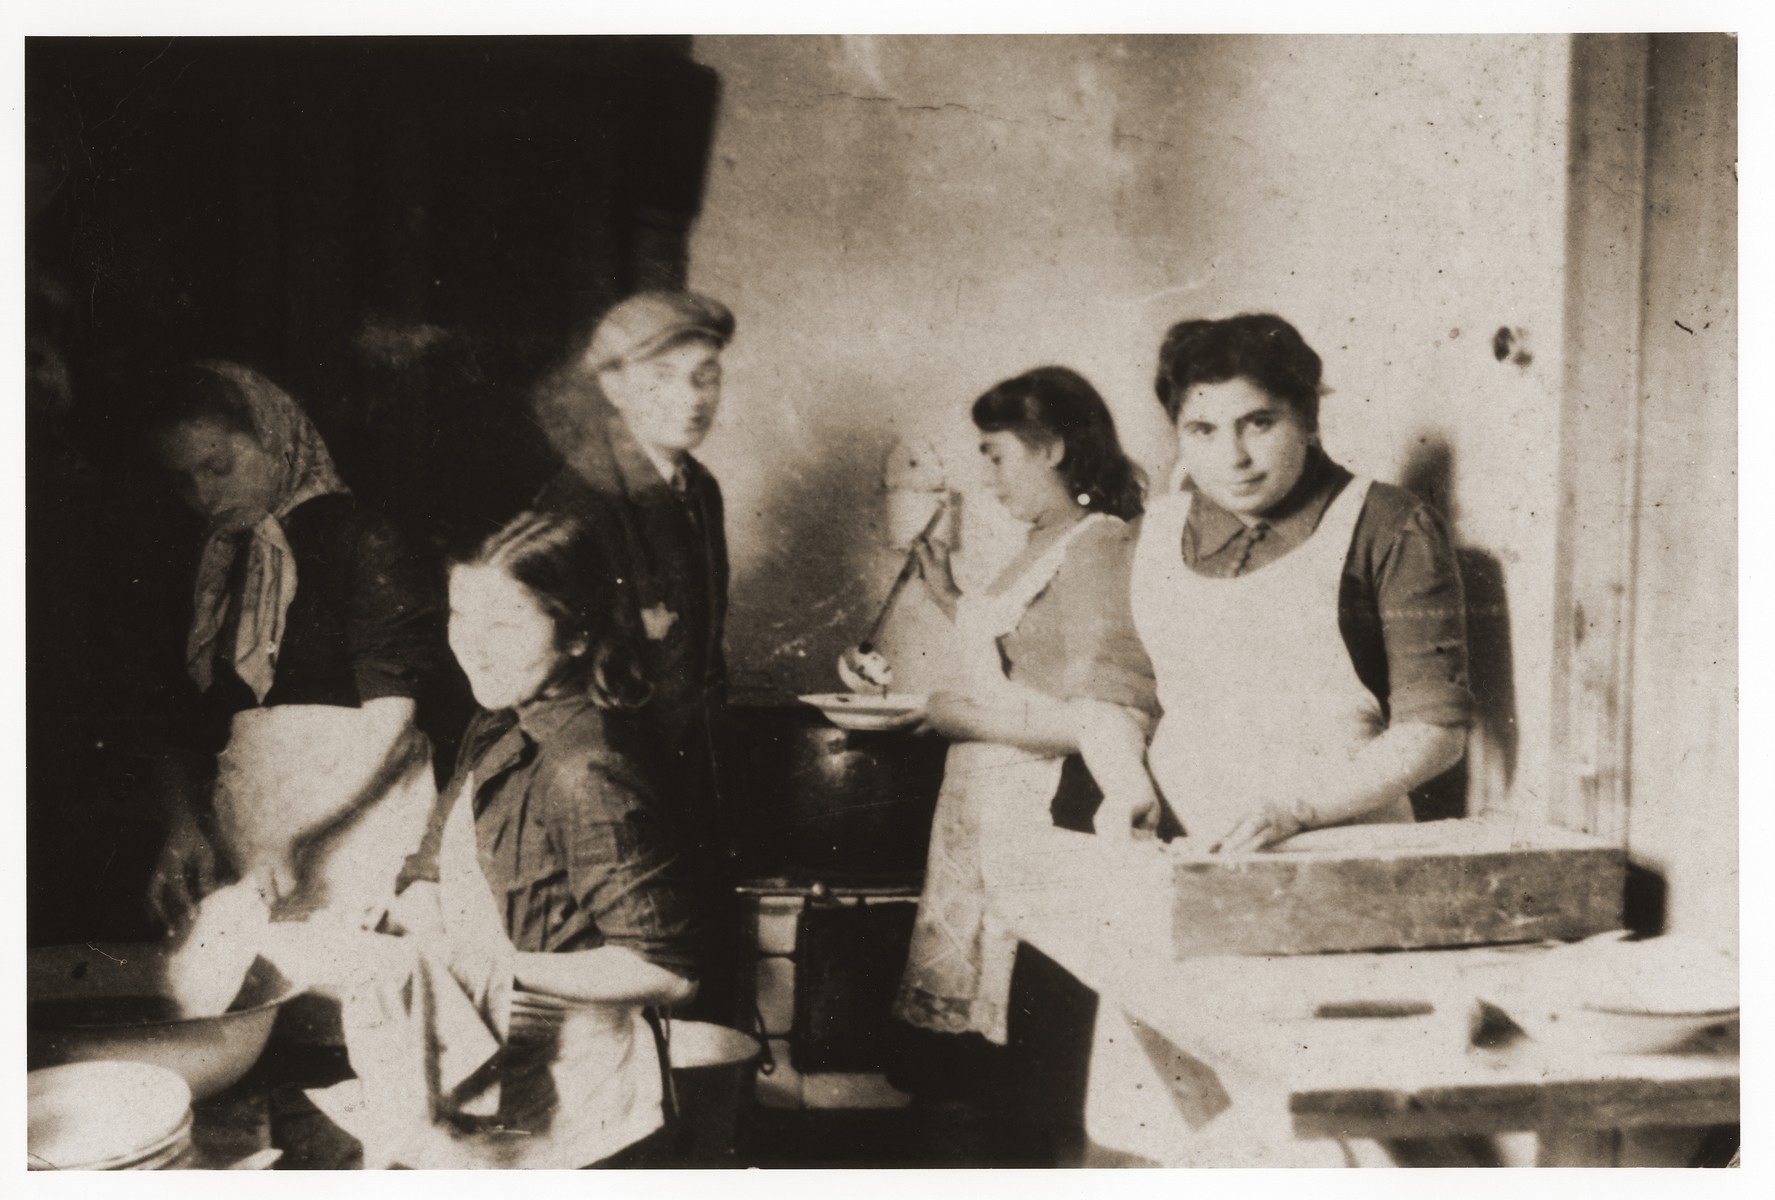 Lodz ghetto residents at work in a public kitchen.